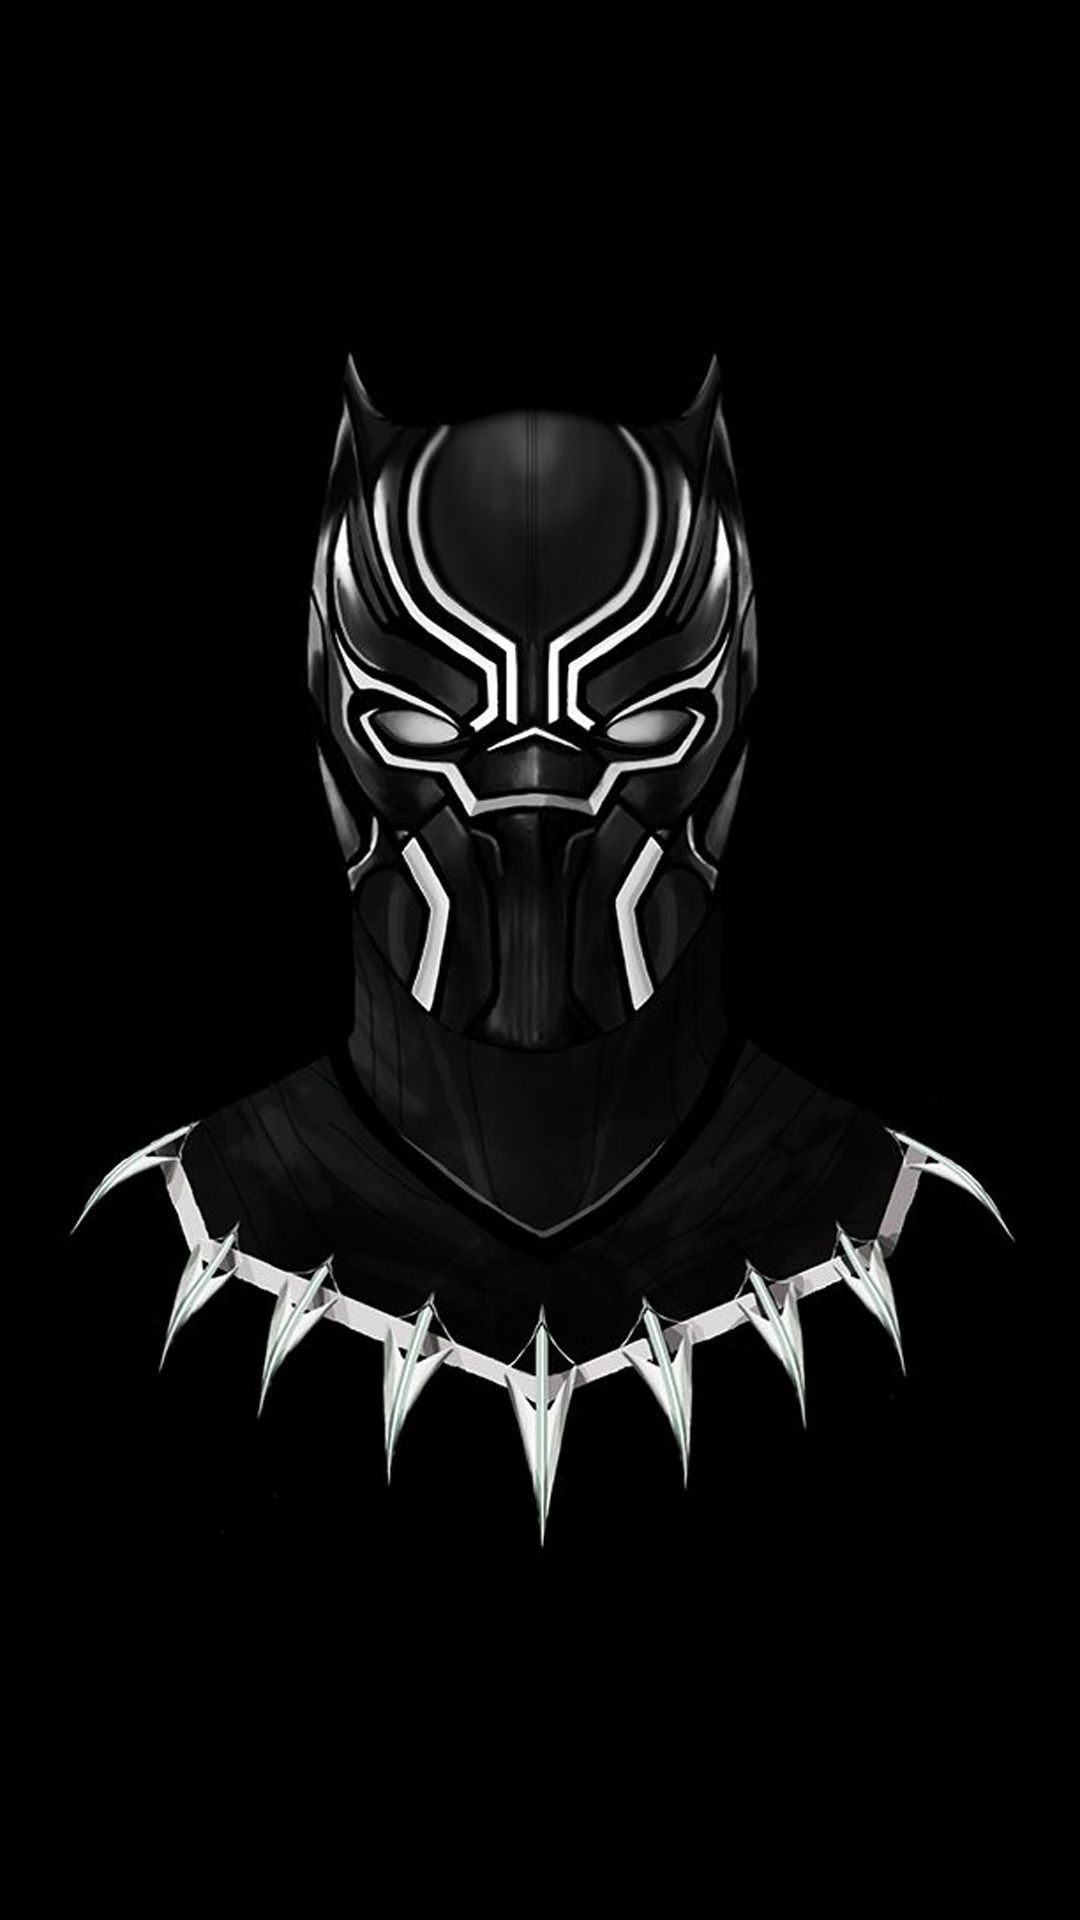 Wallpaper Black Panther Hd Iphone In 2020 Black Panther Marvel Black Panther Hd Wallpaper Black Panther Art